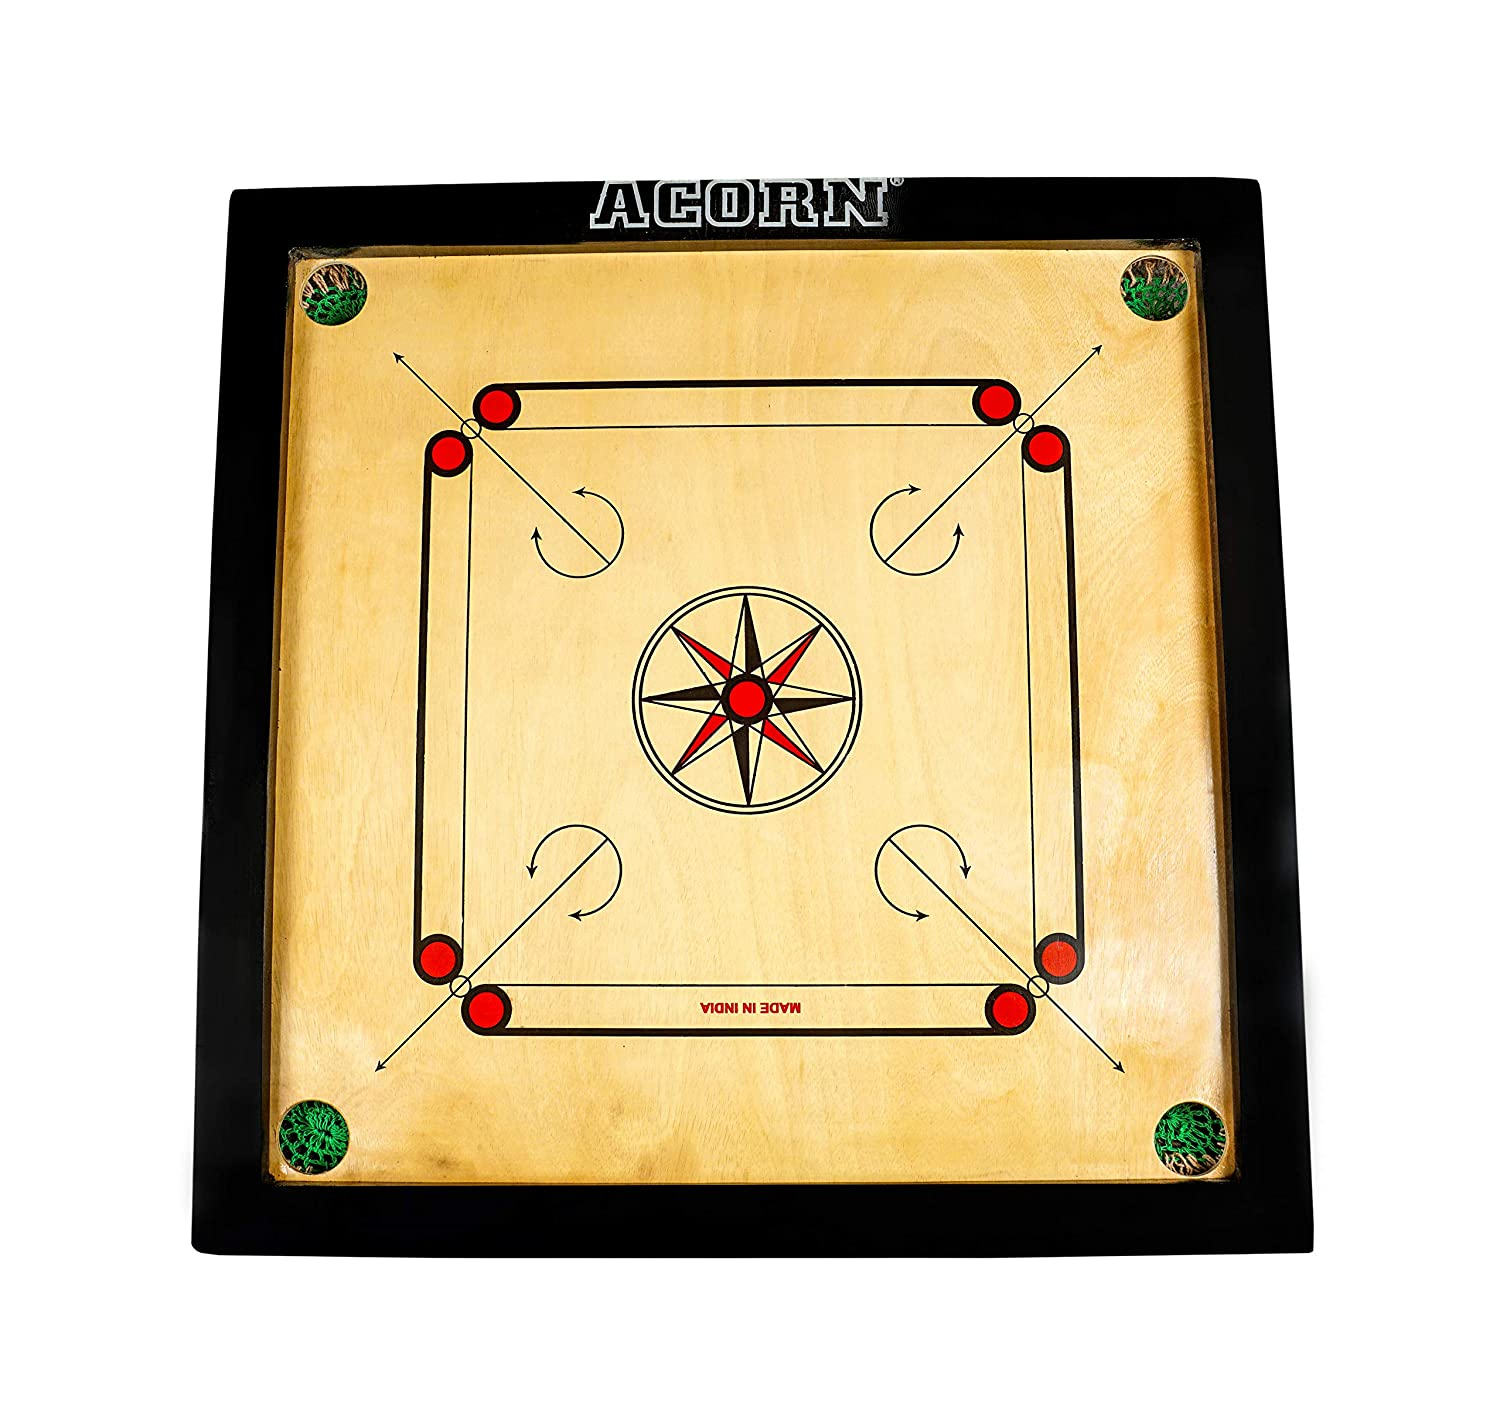 Premium 25X25 Size Carrom Board (Top Quality)